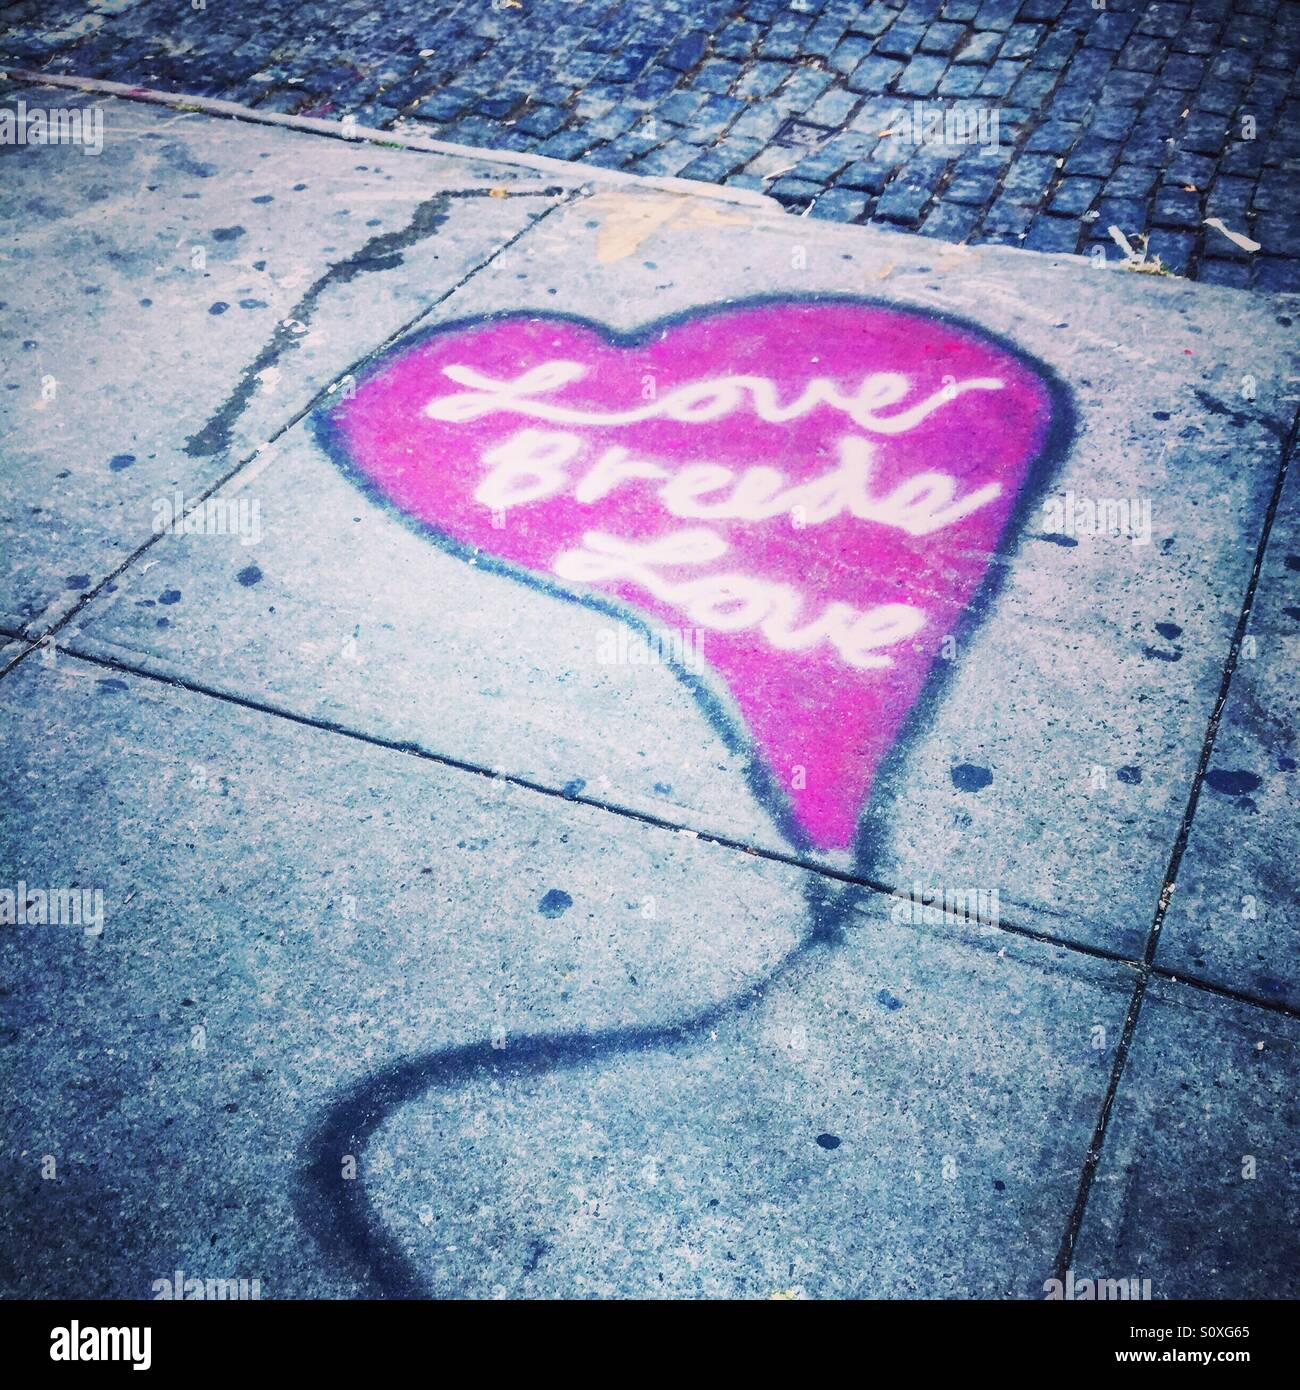 Love breeds love graffiti street art on pavement - Stock Image